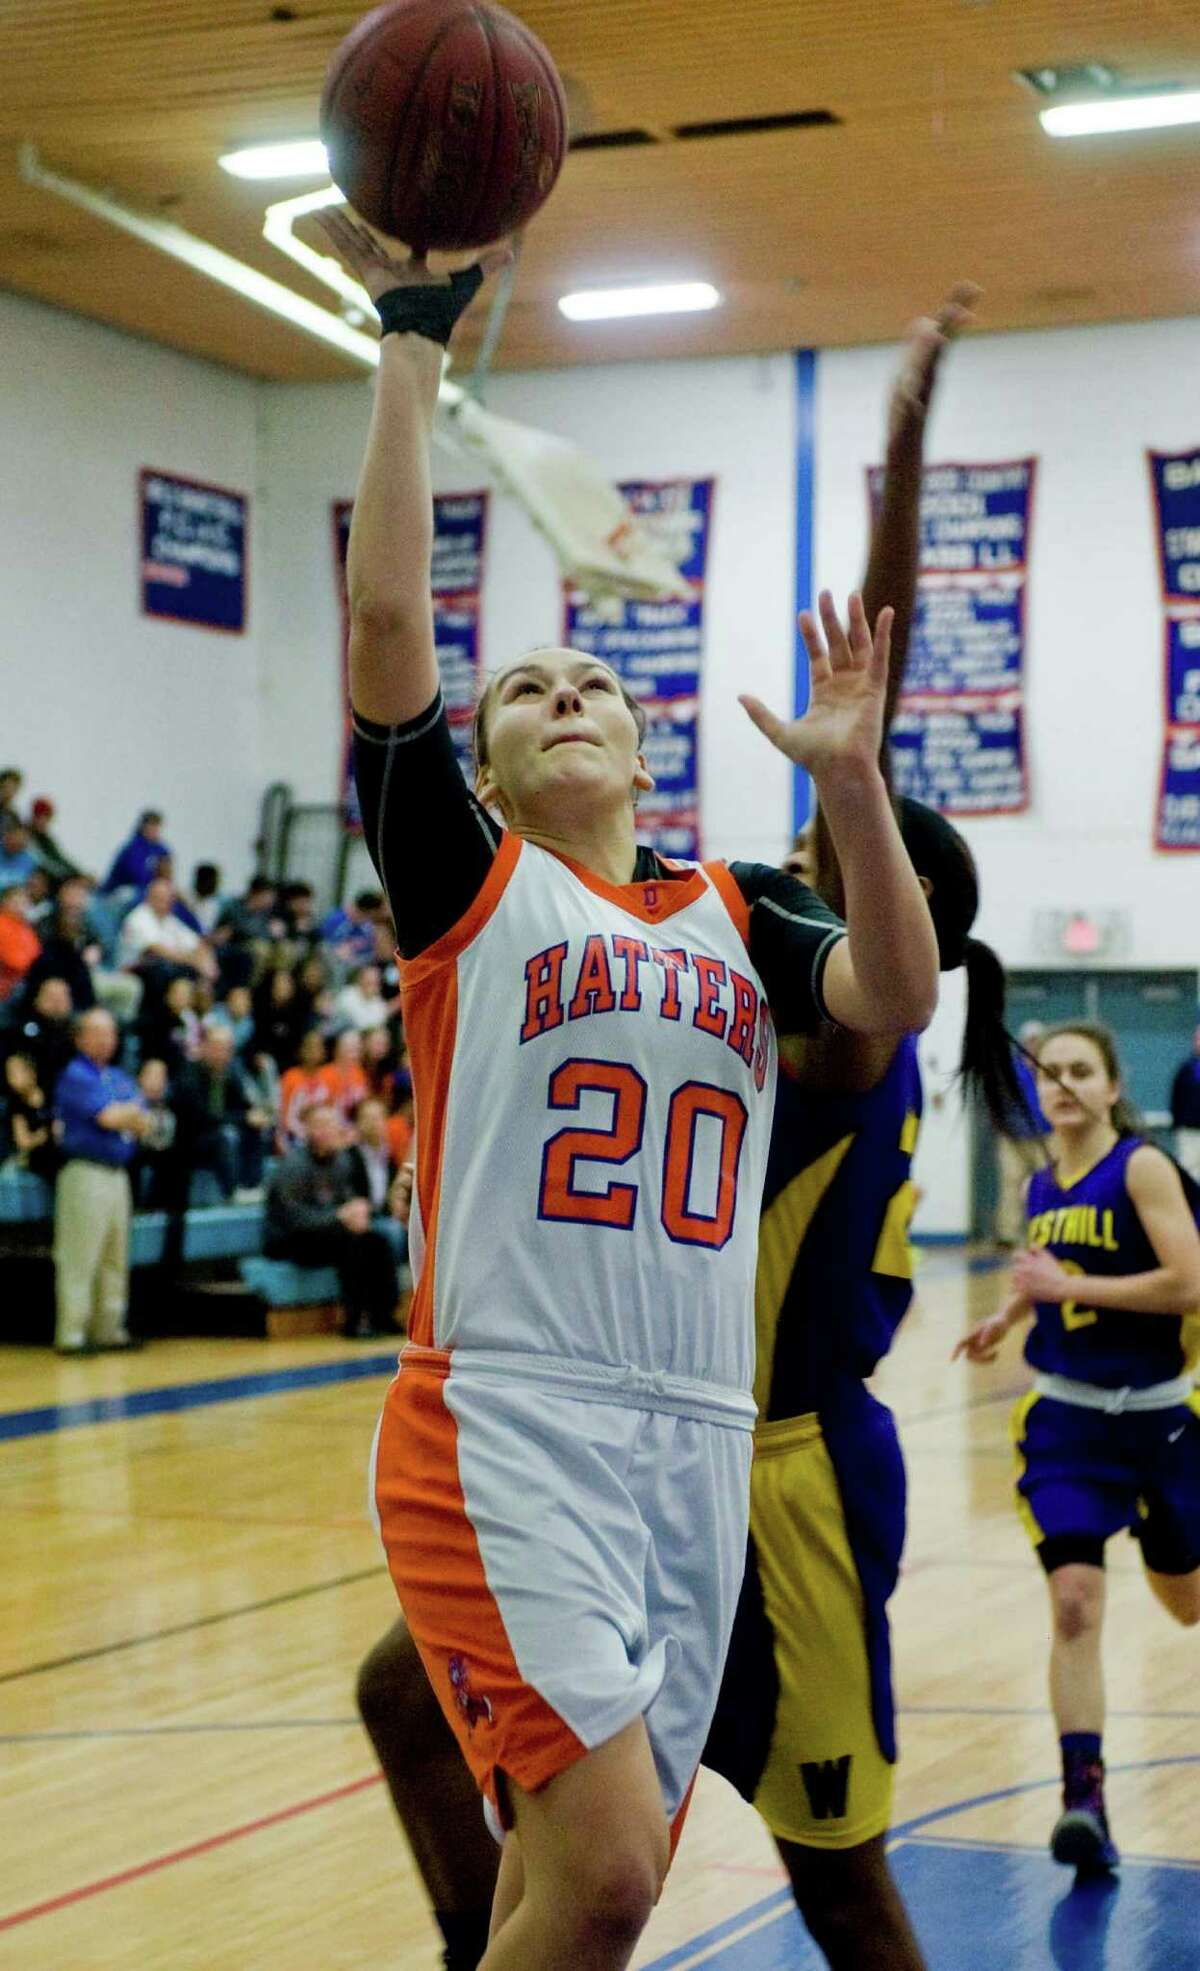 Danbury High School Forward Allie Smith goes up to the basket during the Class LL Girls Basketball Quarterfinals against Westhill High School, played at Danbury. Monday, March 10, 2014